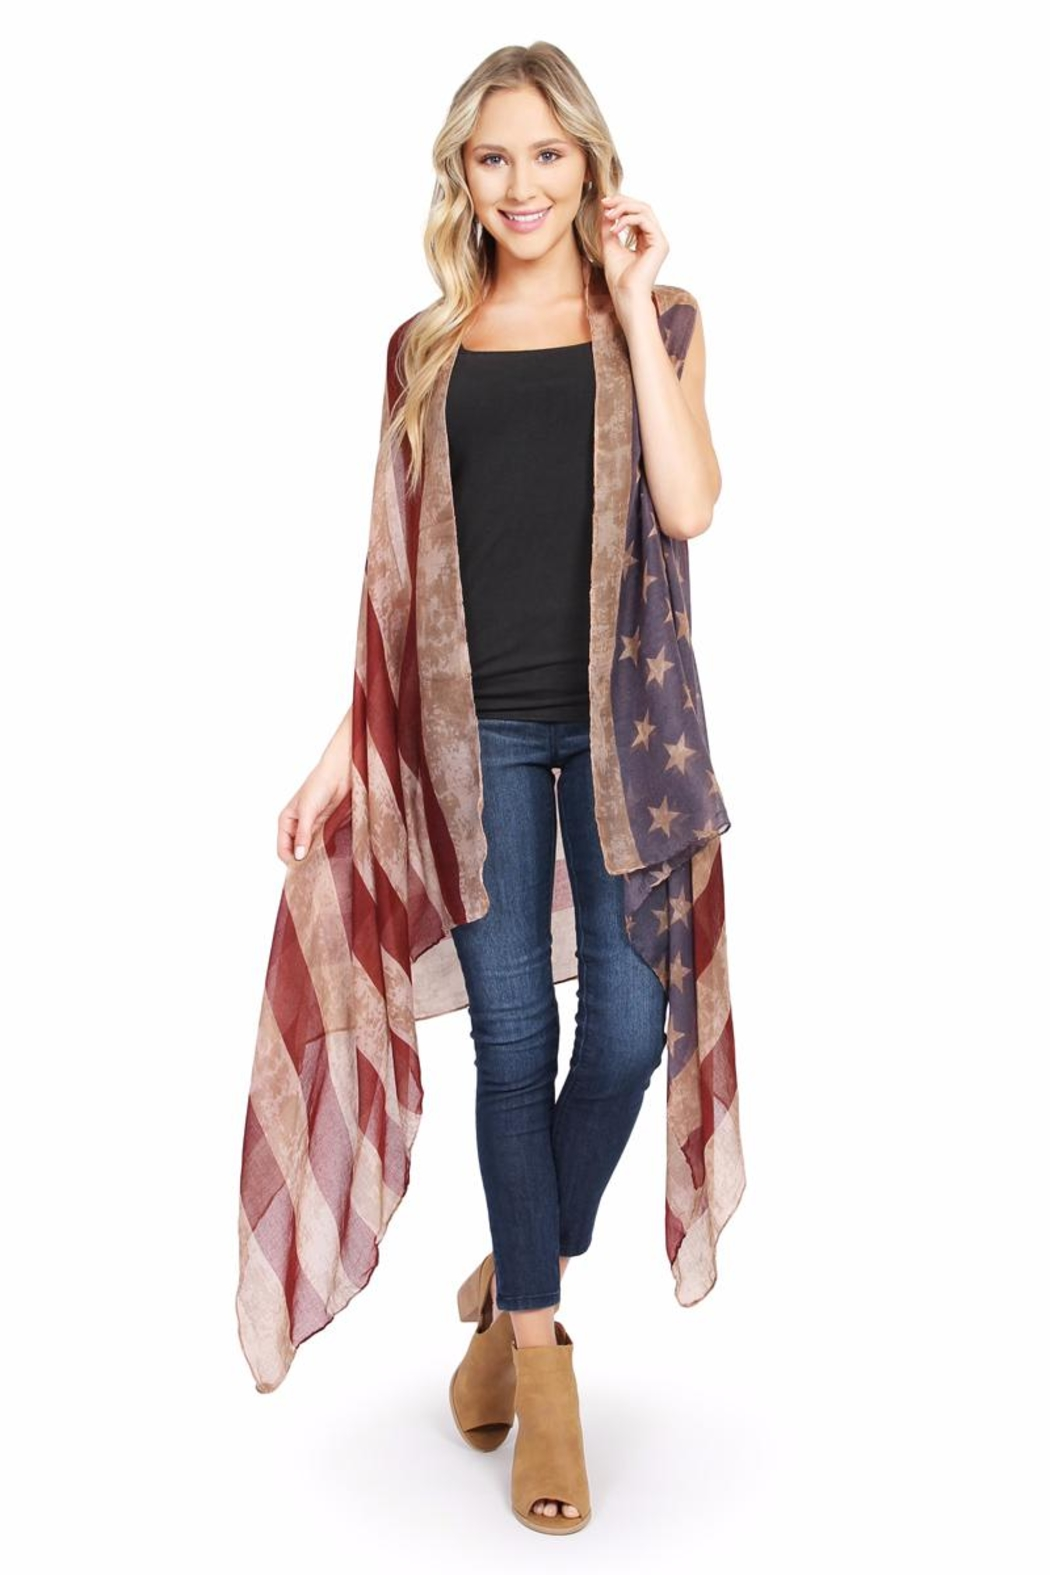 Riah Fashion U.S. Flag Sheer-Cardigan from California — Shoptiques